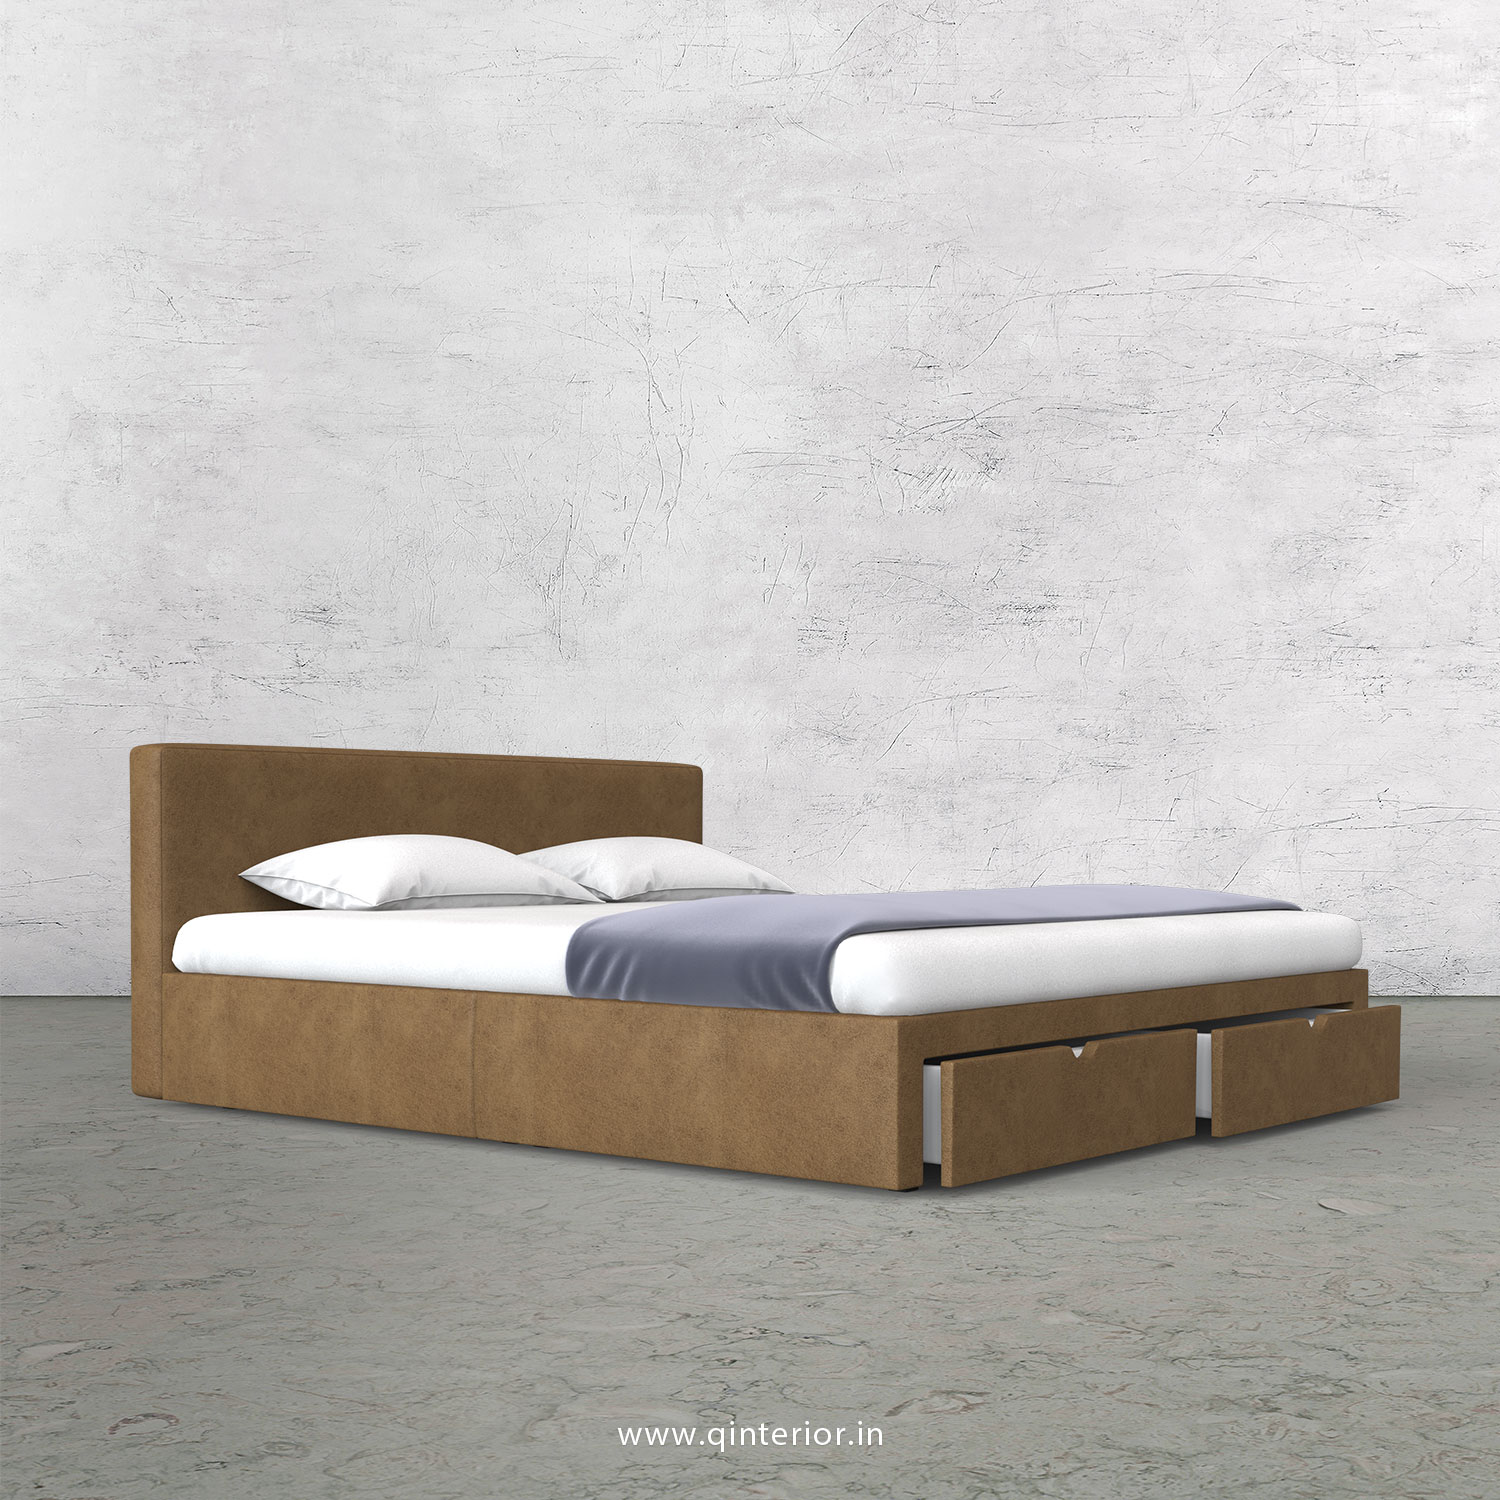 Nirvana King Size Storage Bed in Fab Leather Fabric - KBD001 FL02